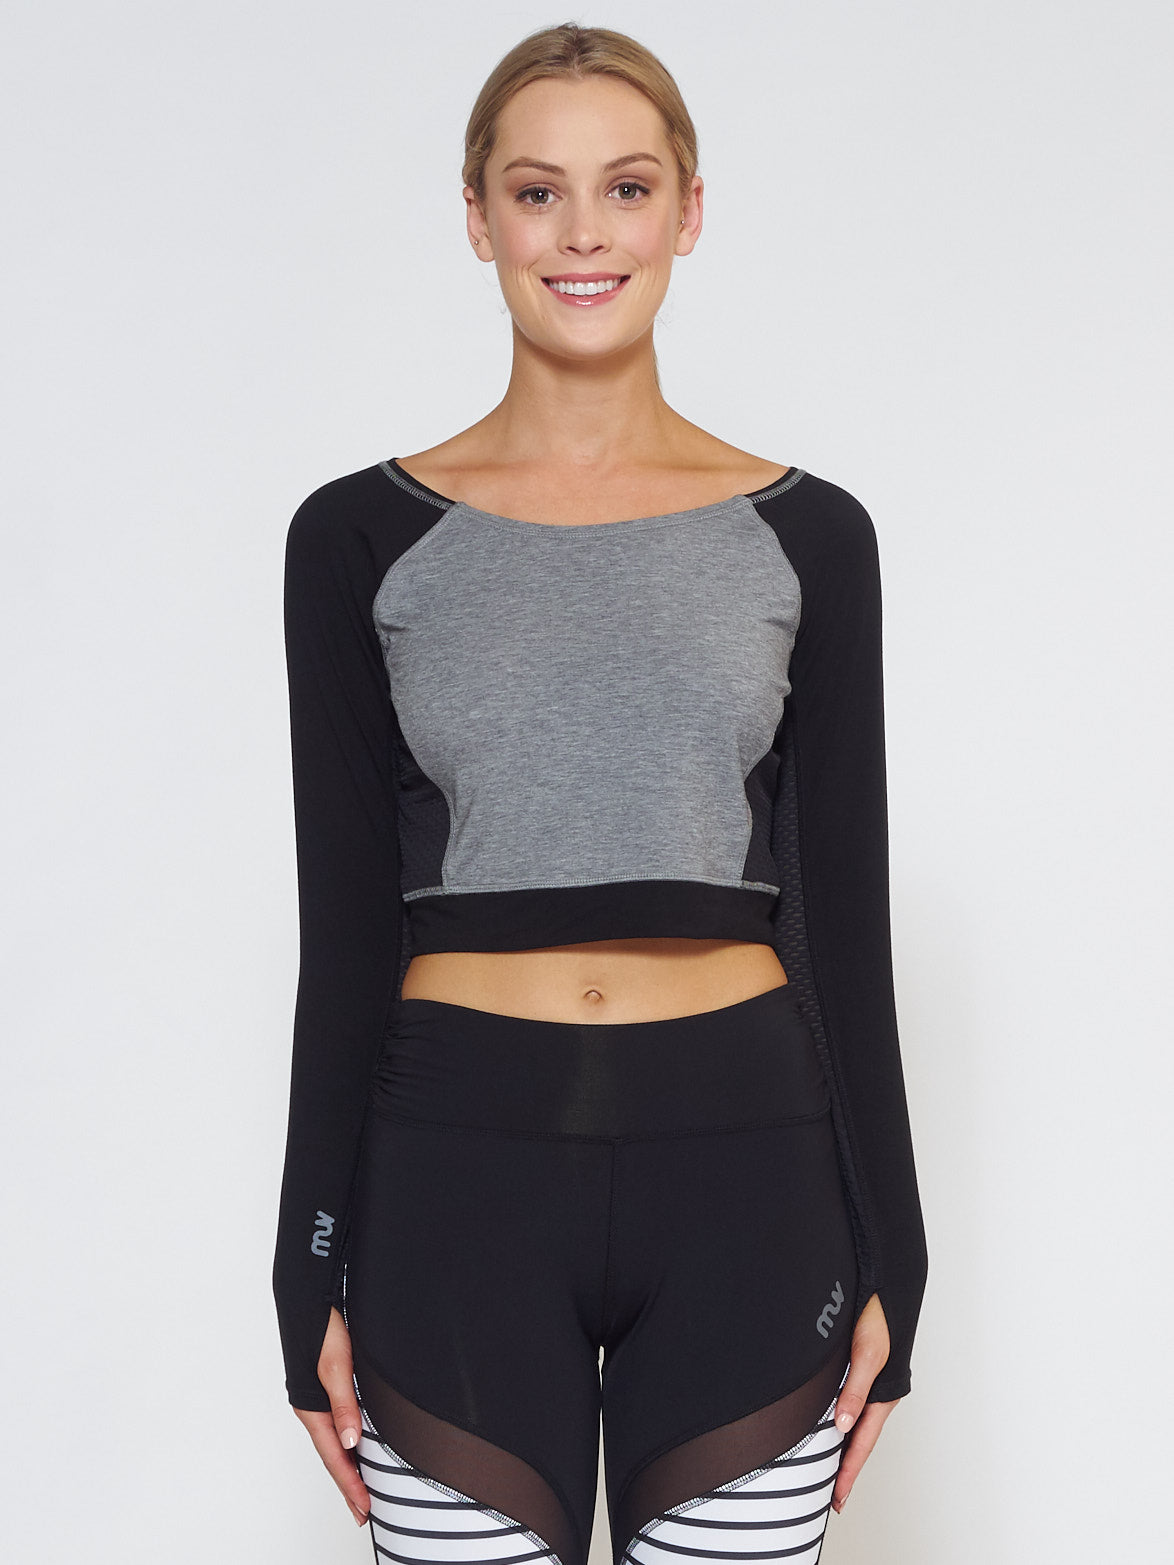 MUV Sportswear_VENT Long-Sleeve Crop_Colour Black_UV Protecting Sportswear